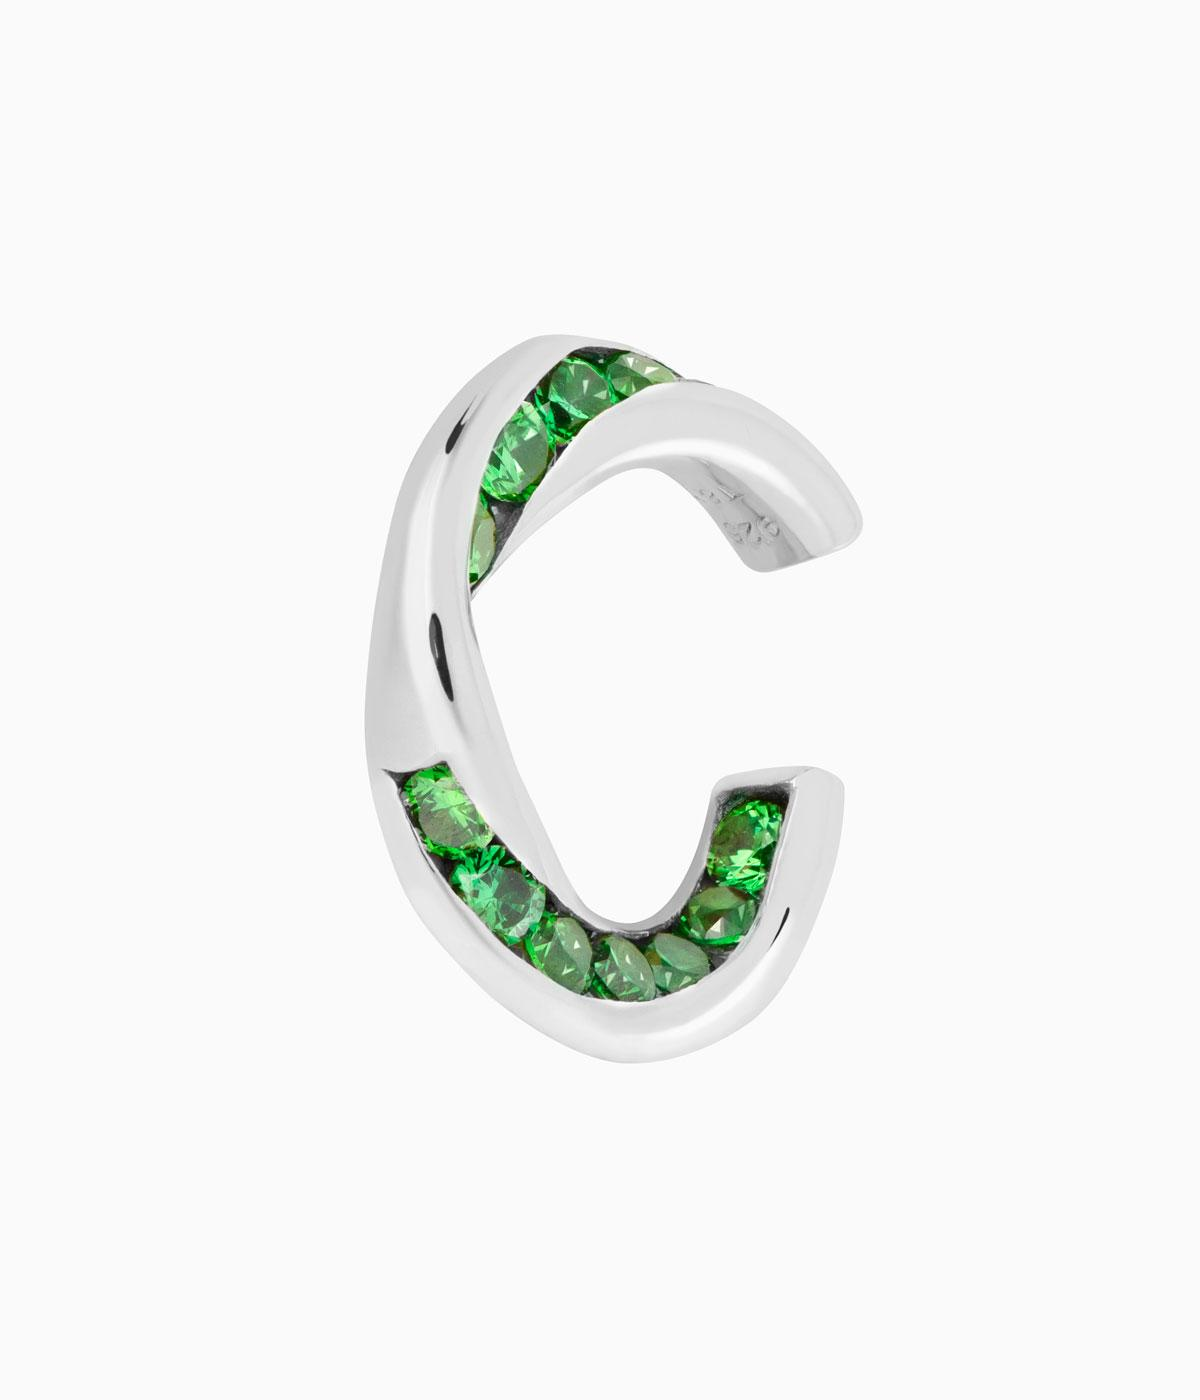 Silver cuff dotted with green topaz